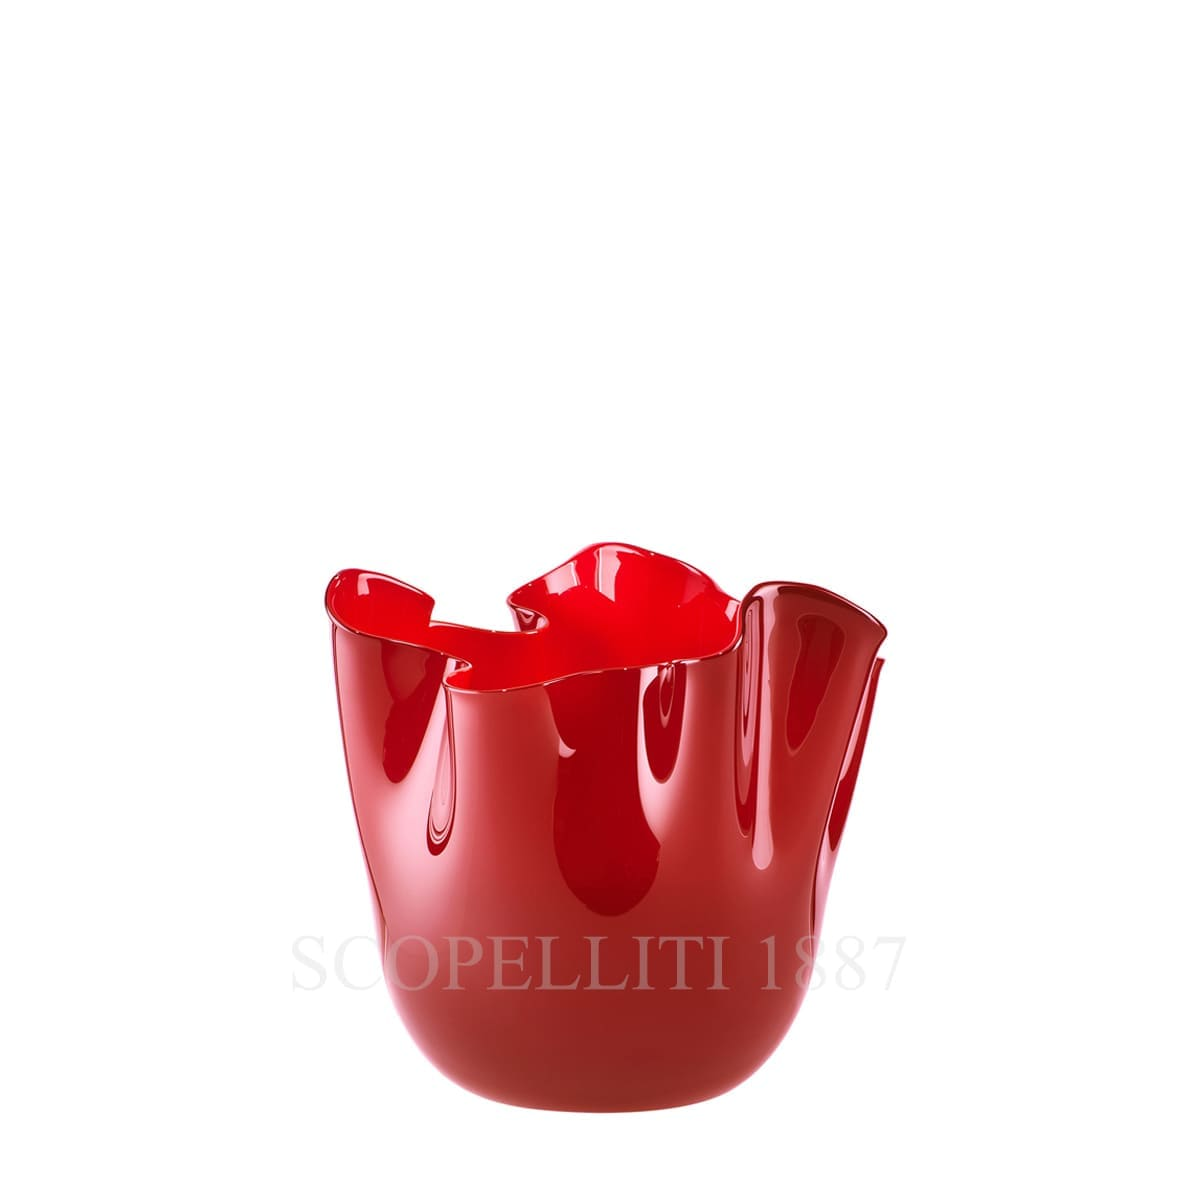 fazzoletto venini small vase red